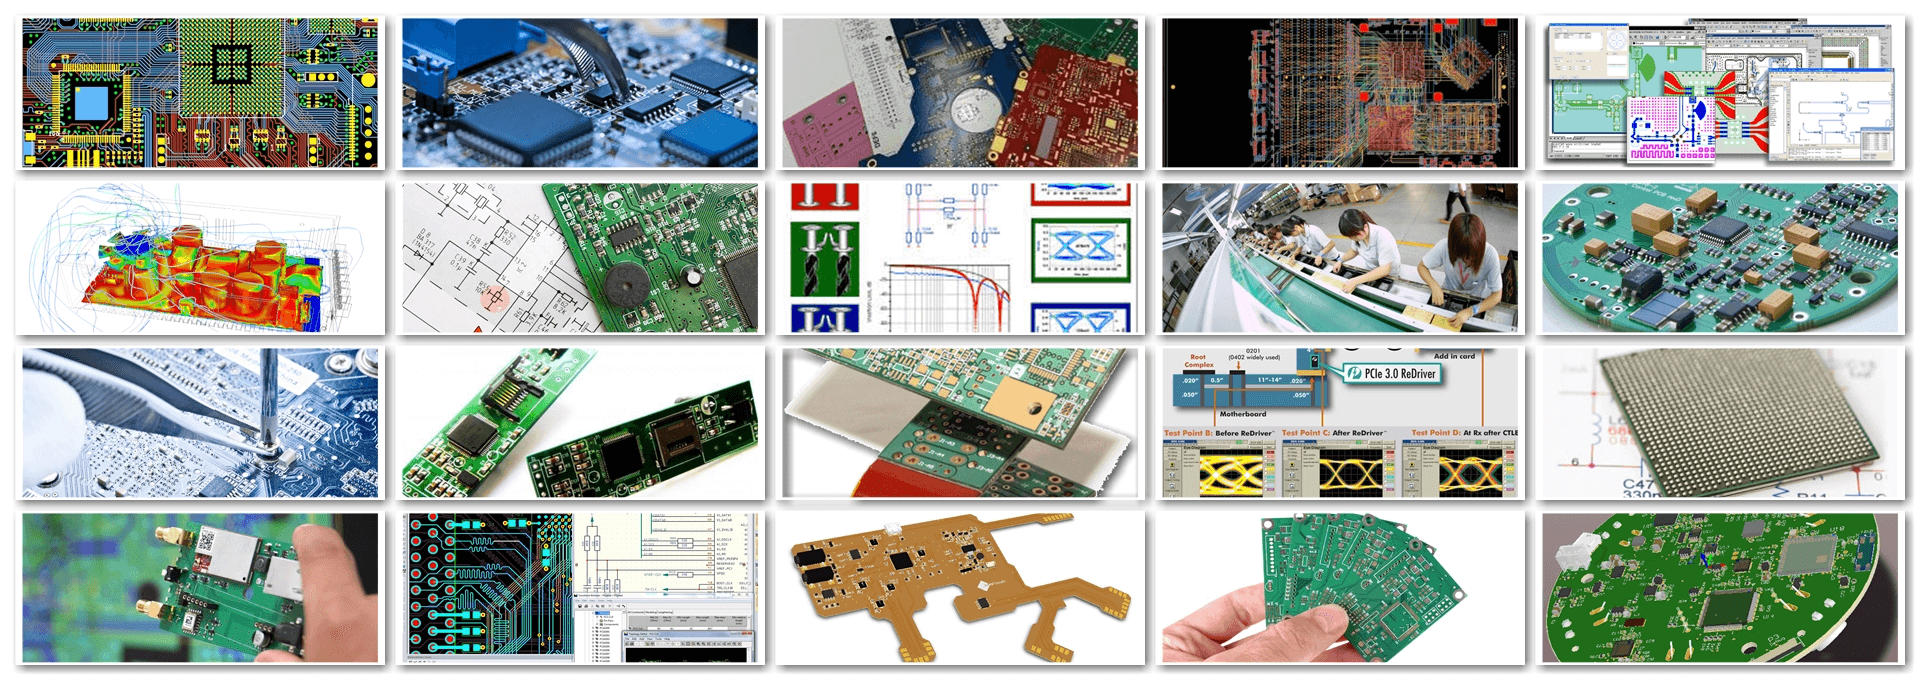 PCB SCHEMATIC - LAYOUT  DESIGN & MANUFACTURING